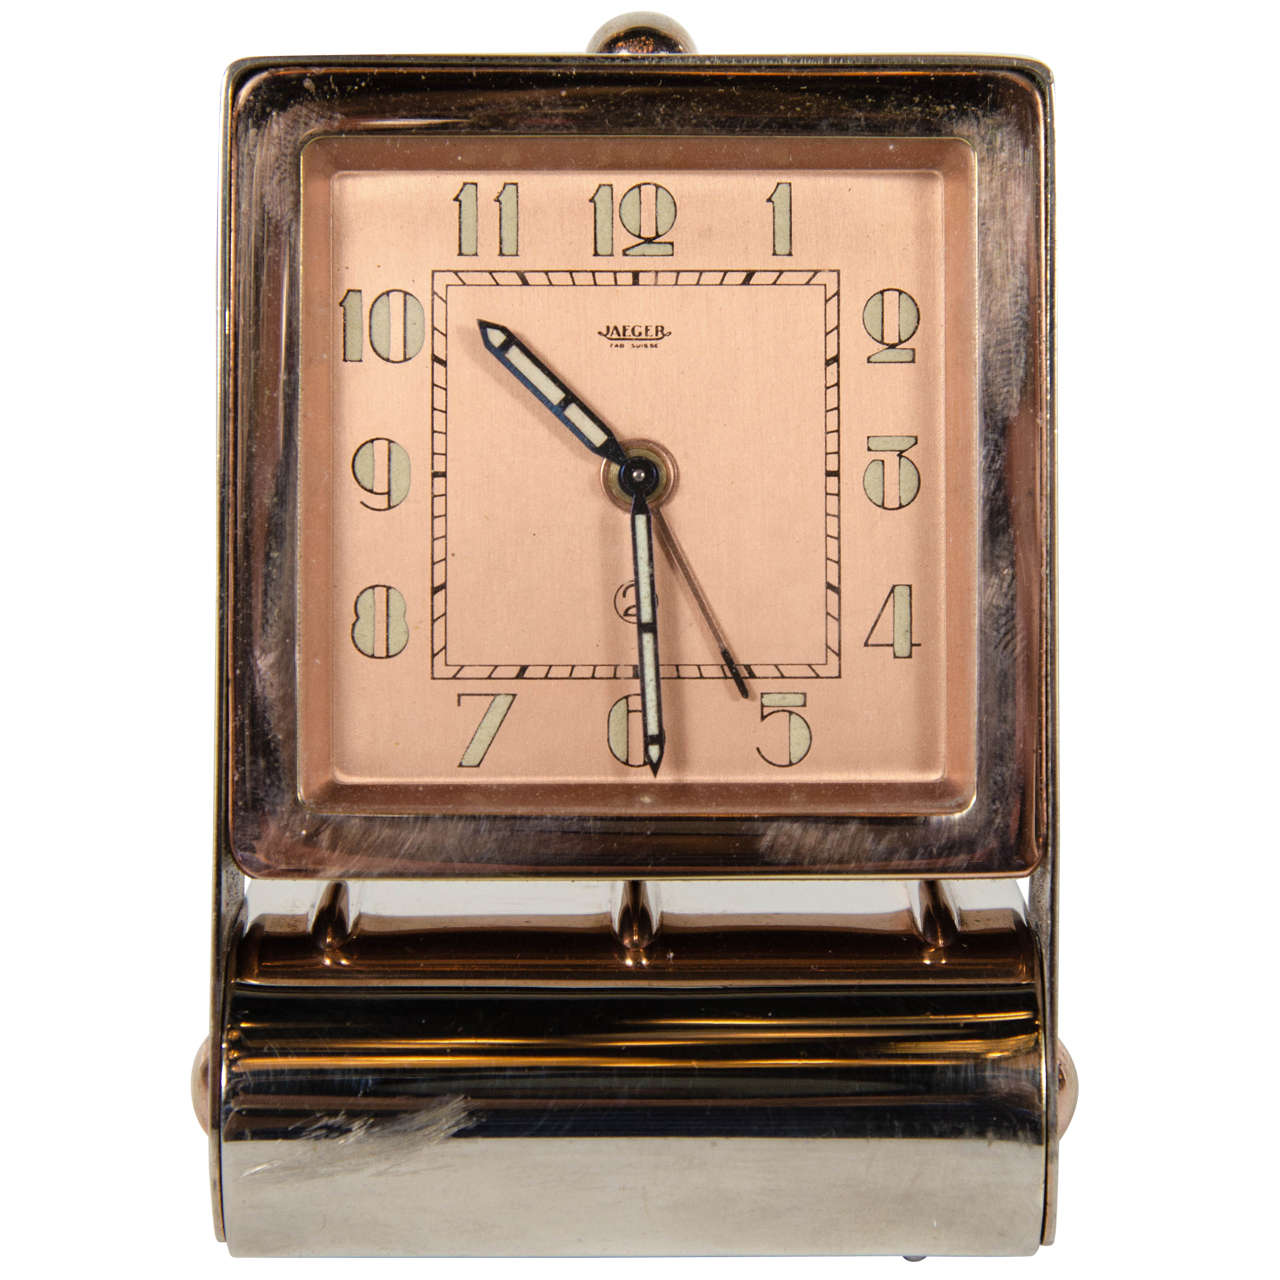 Art deco rose gold table or travel alarm clock at 1stdibs Art deco alarm clocks